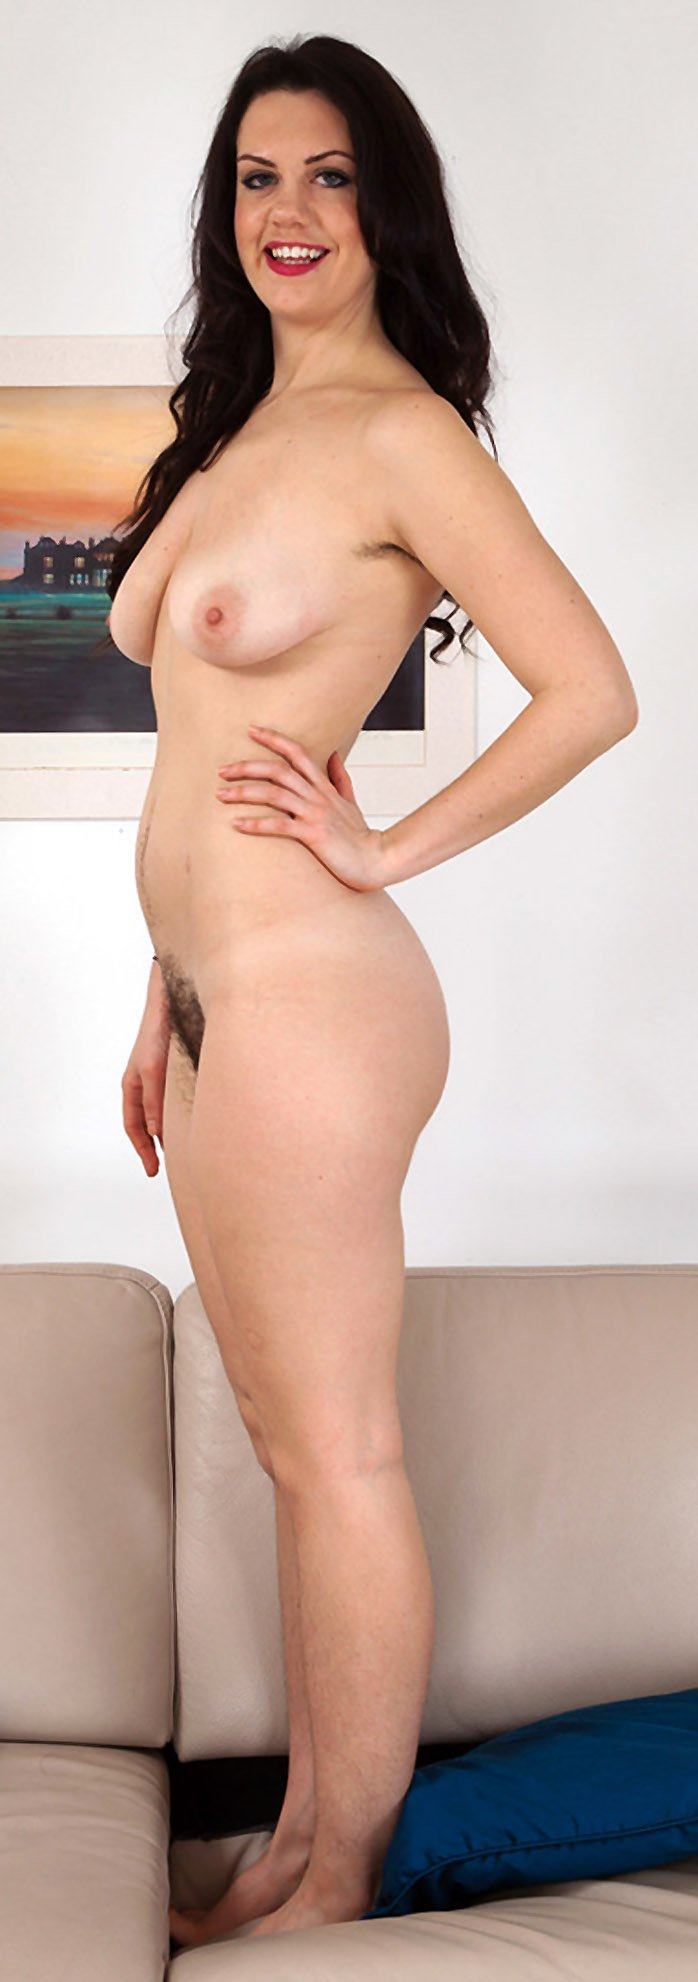 Brunette with hairy pussy Melissa posing naked in the living room